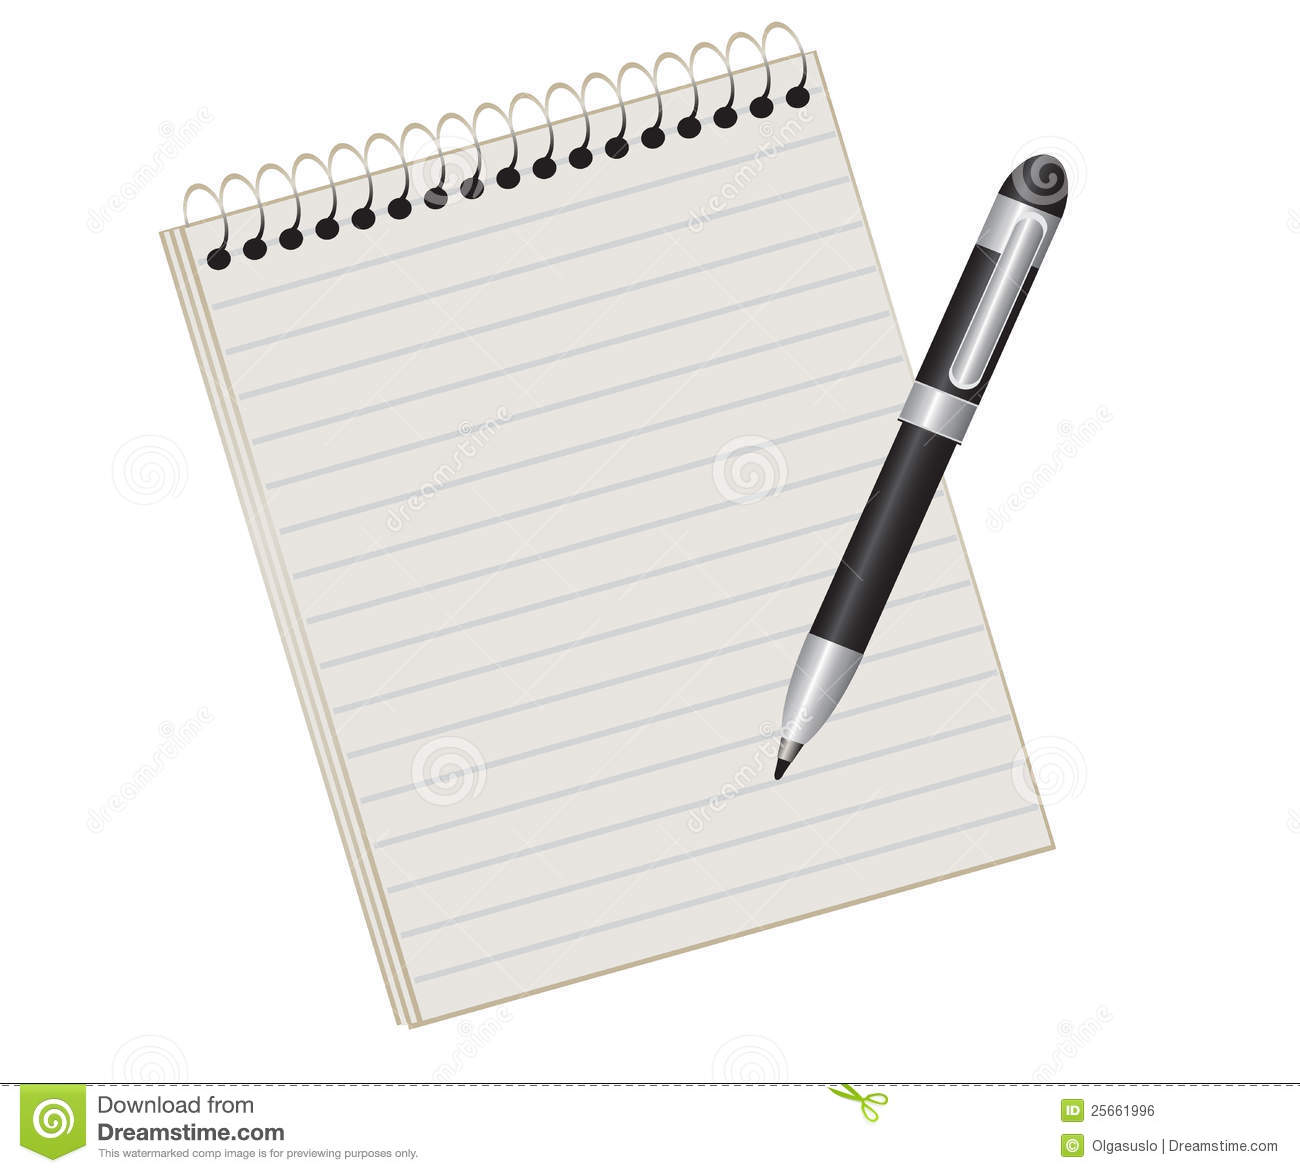 Notebook And Pen Royalty Free Stock Image - Image: 25661996